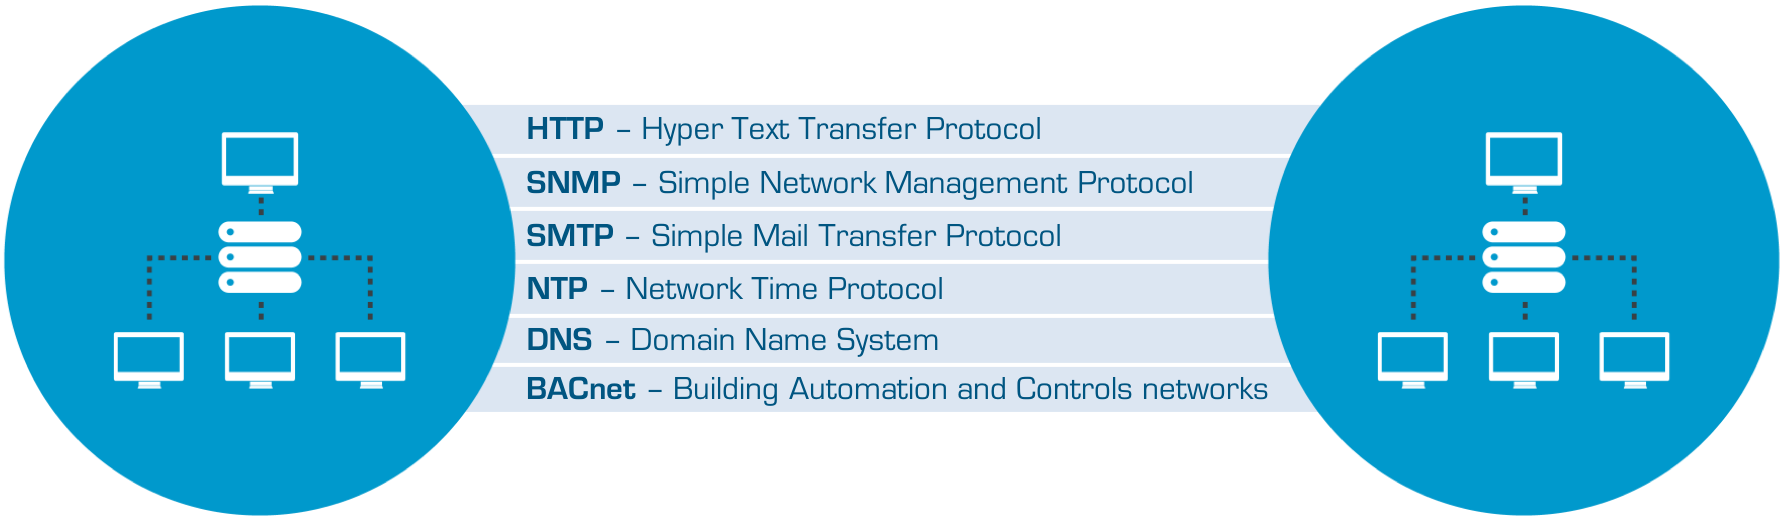 Application Protocols include HTTP, SNMP, SMTP, NTP, DNS, BACnet